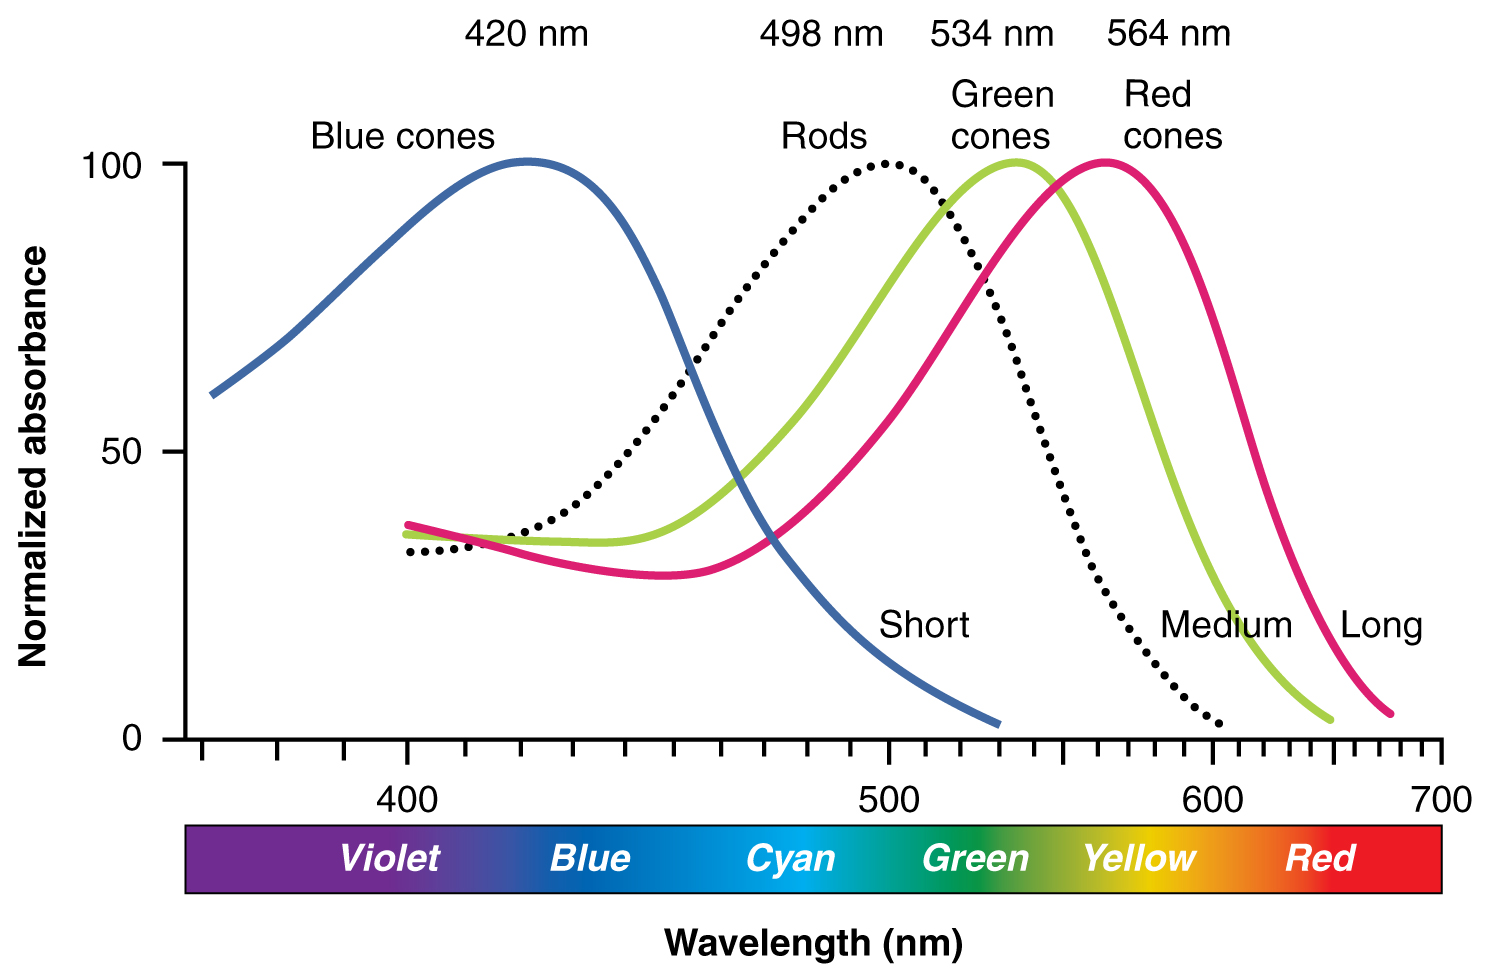 This graph shows the normalized absorbance versus wavelength for different cell types in the eye.